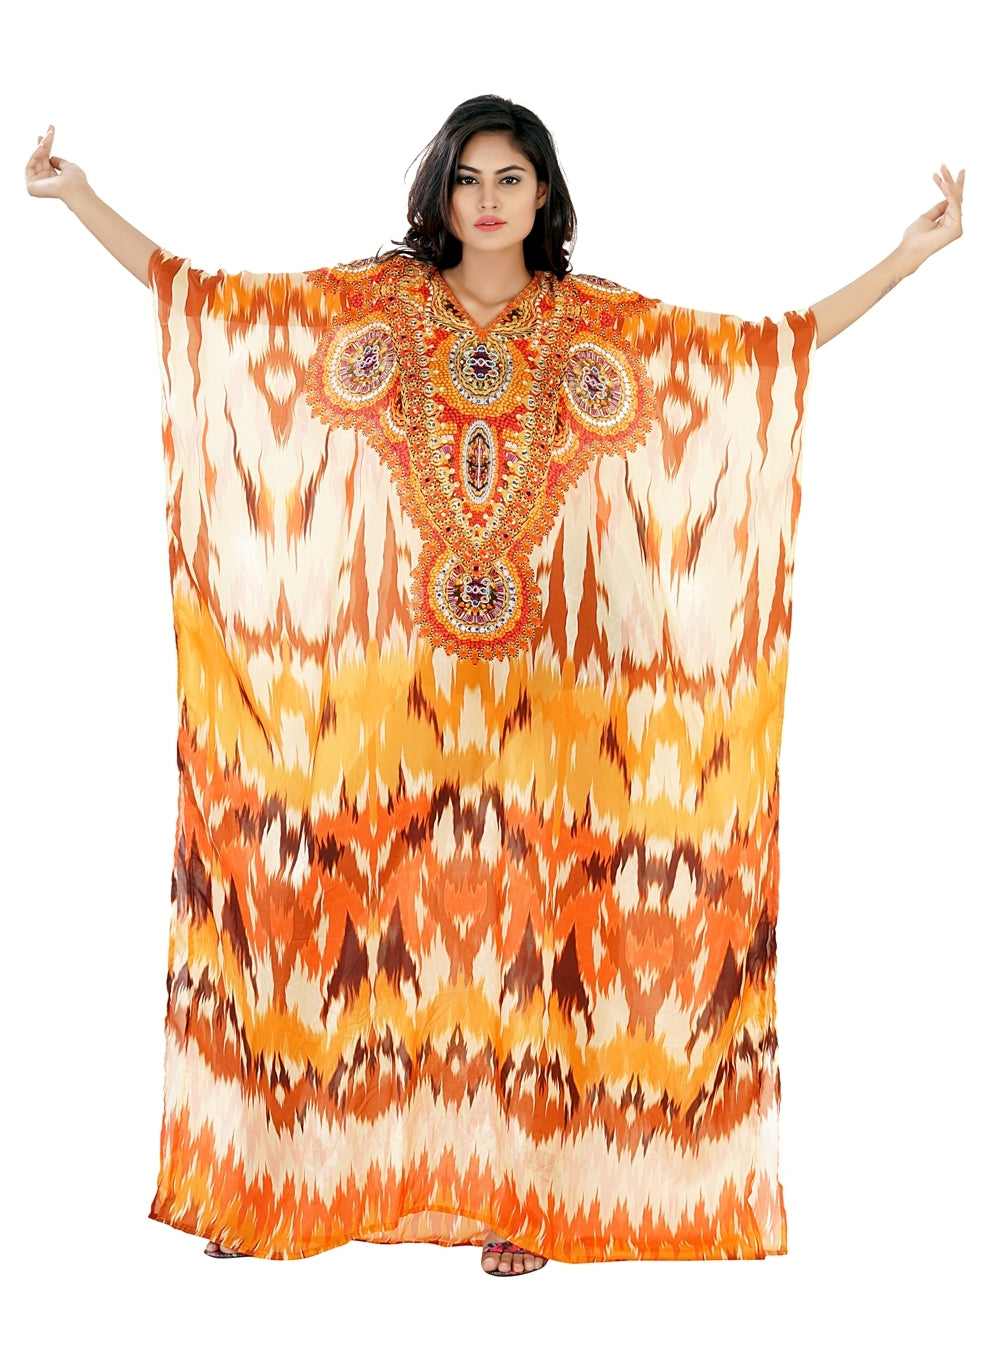 Pool party kaftan Bright and elegantly embellished full-length orange colored kaftan from Silk Kaftans - Silk kaftan